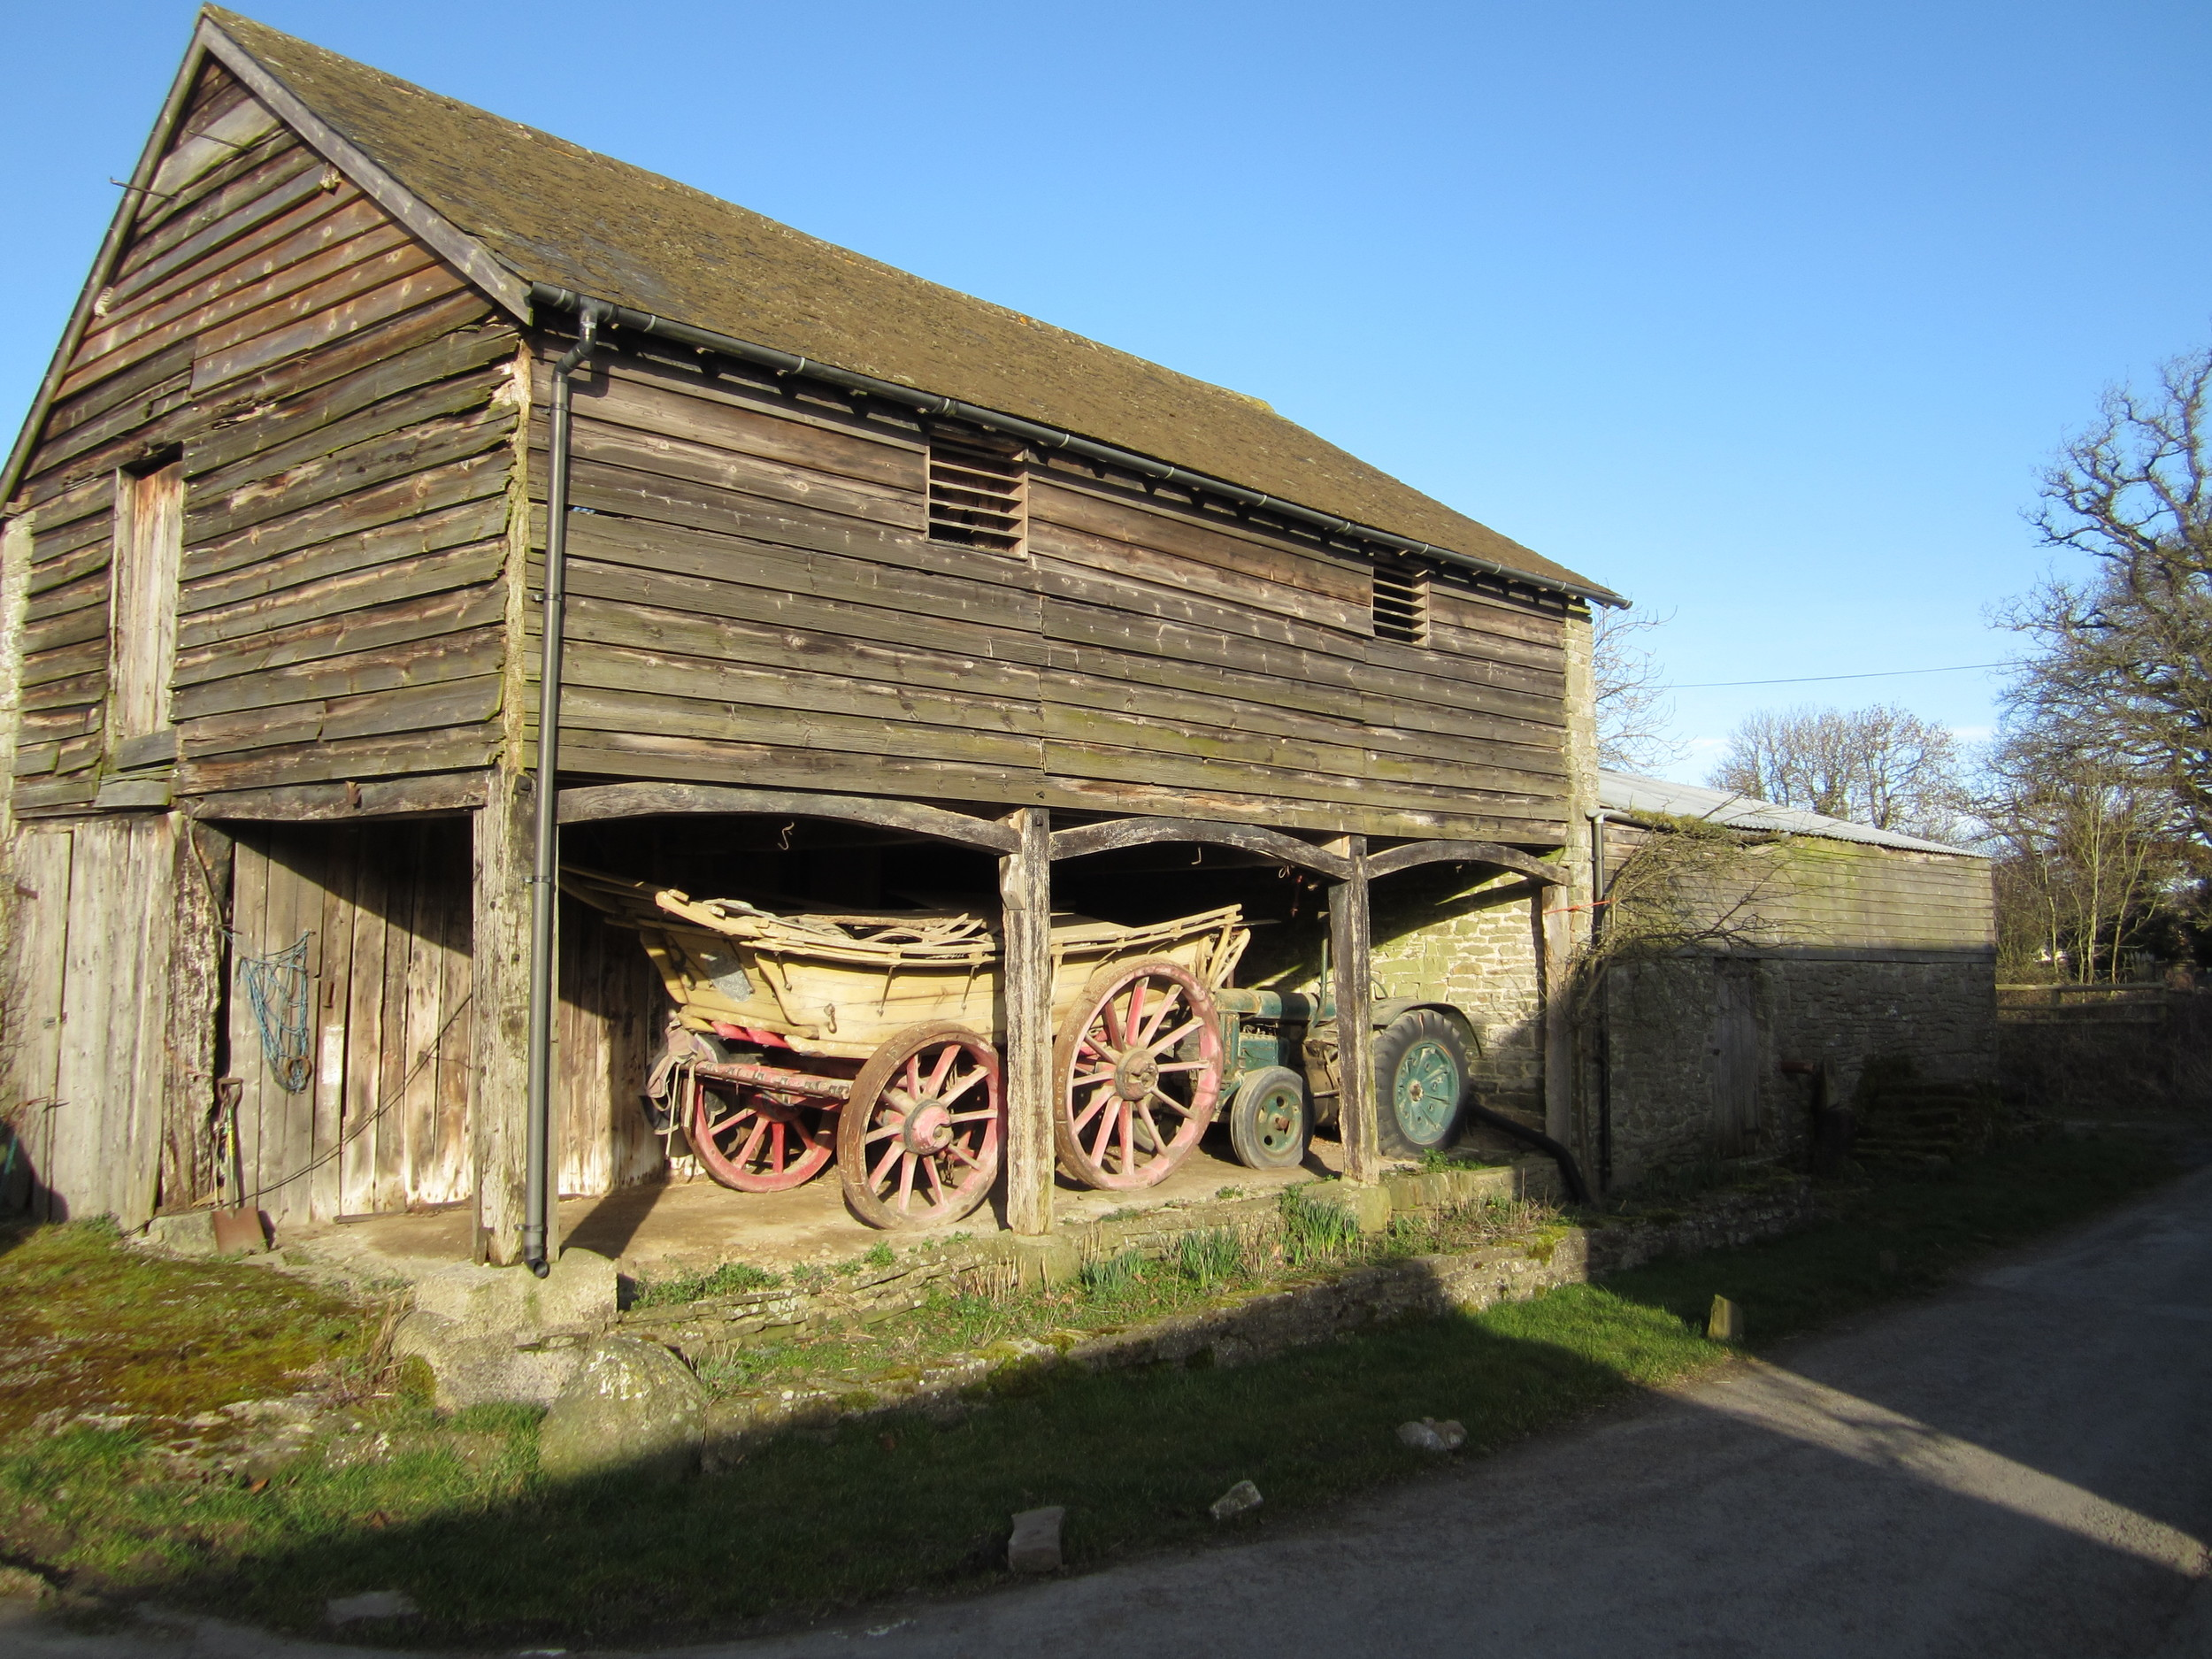 Retired farm machinery at Lower House Farm provides a permanent, central landmark in the village